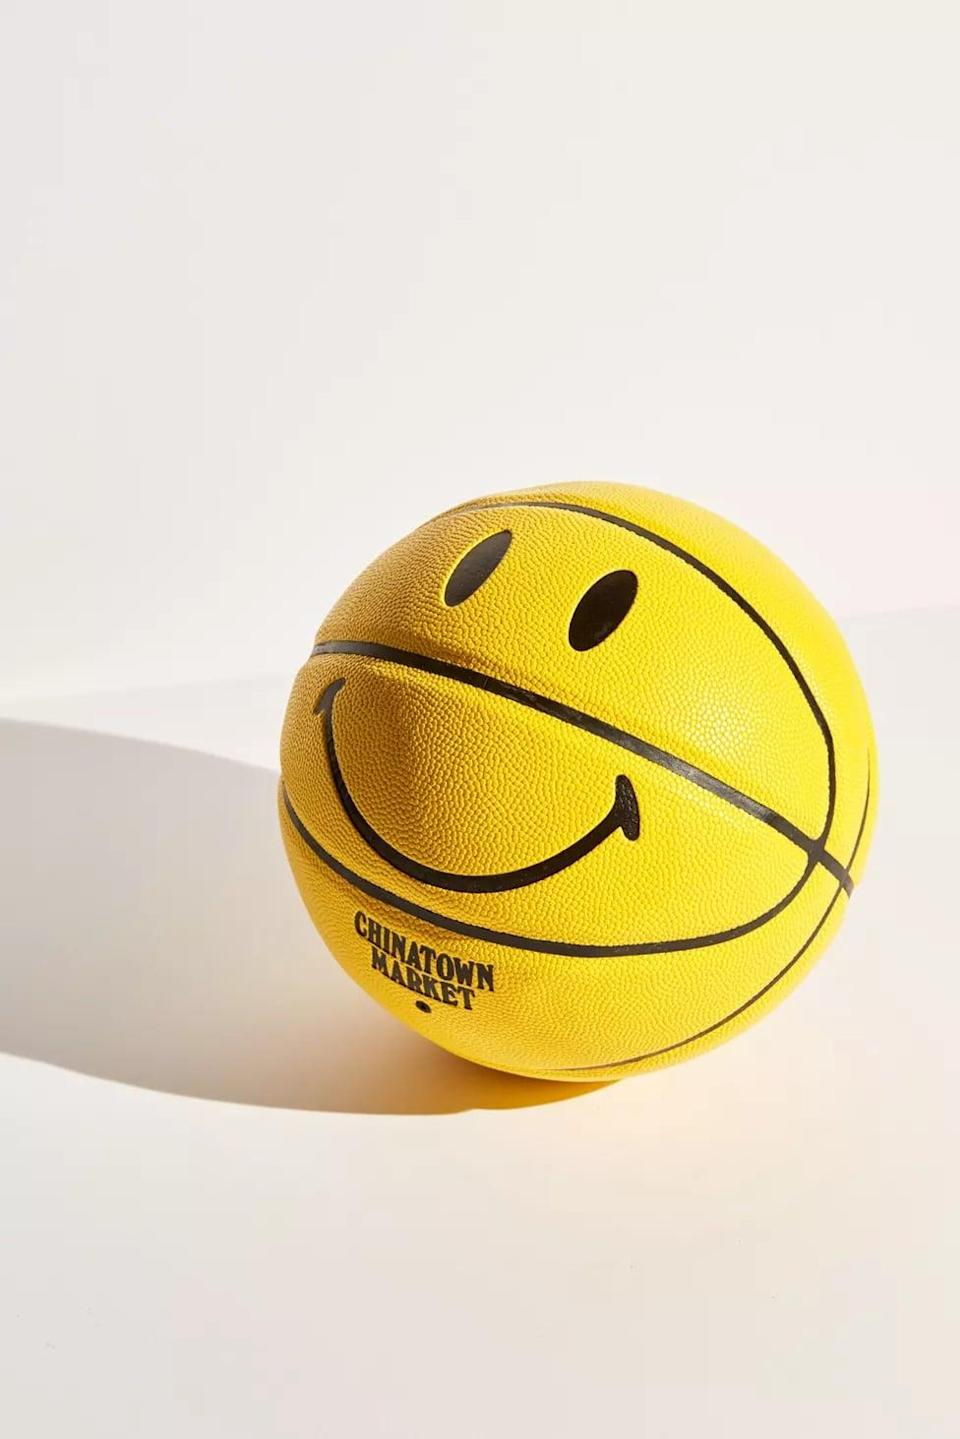 <p>You can't help but be happy when you look at this <span>Chinatown Market X Smiley UO Exclusive Smiley Basketball</span> ($59).</p>